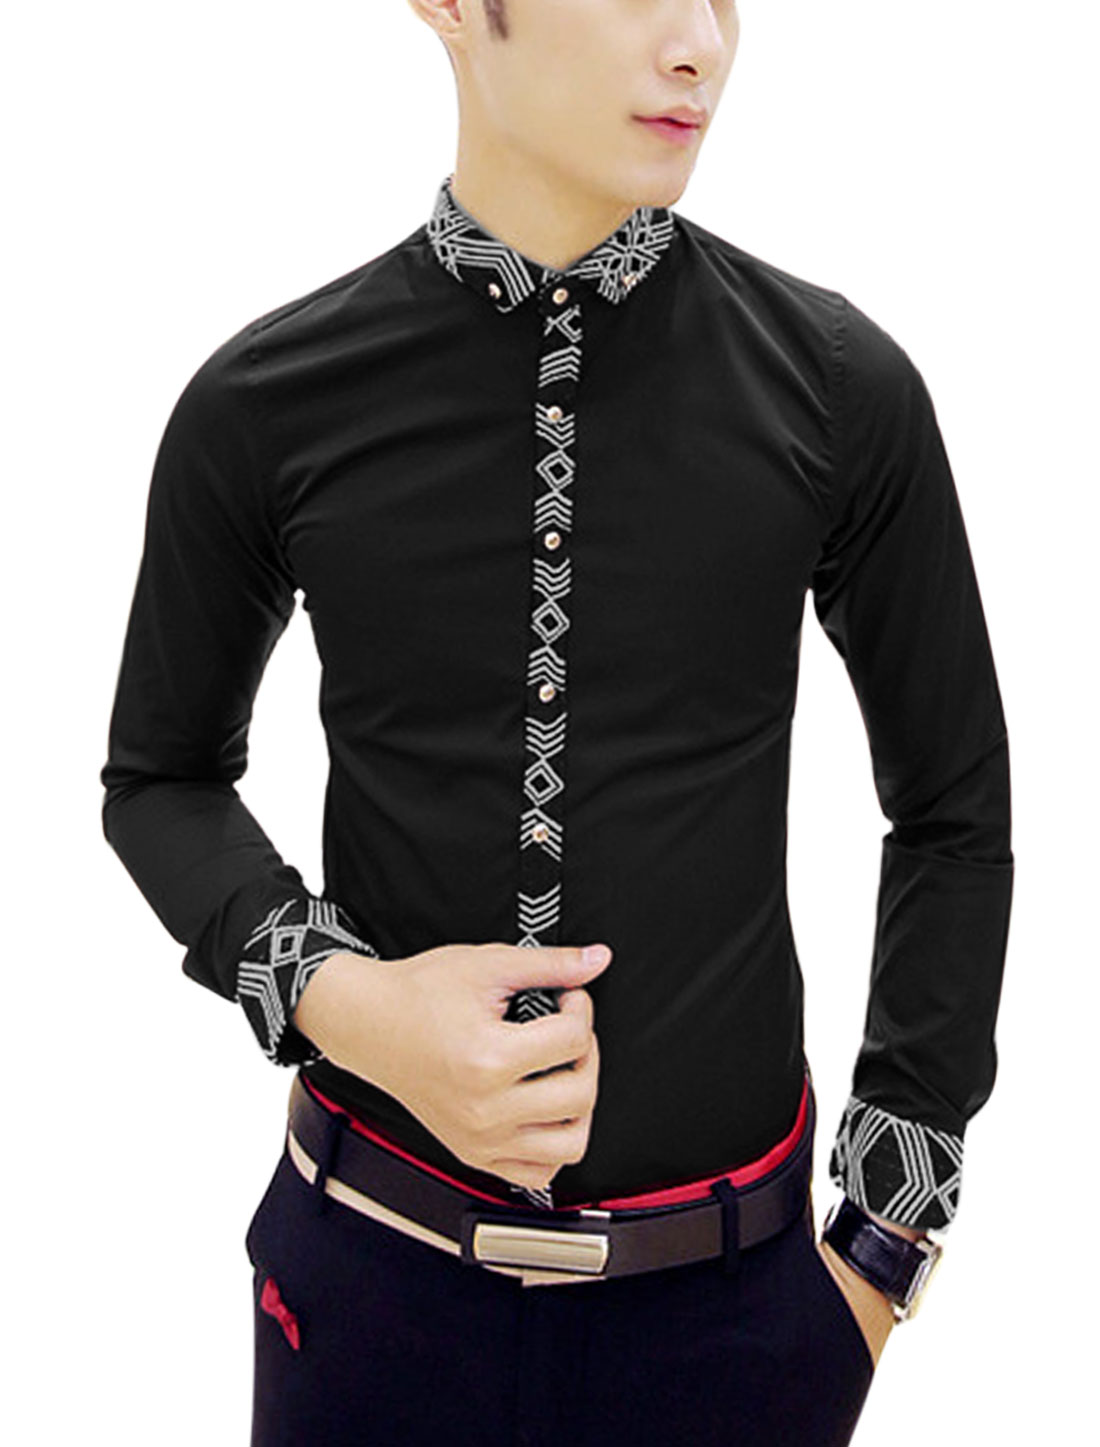 Man Black Long Sleeves Point Collar Single Breasted Design Button Shirt S